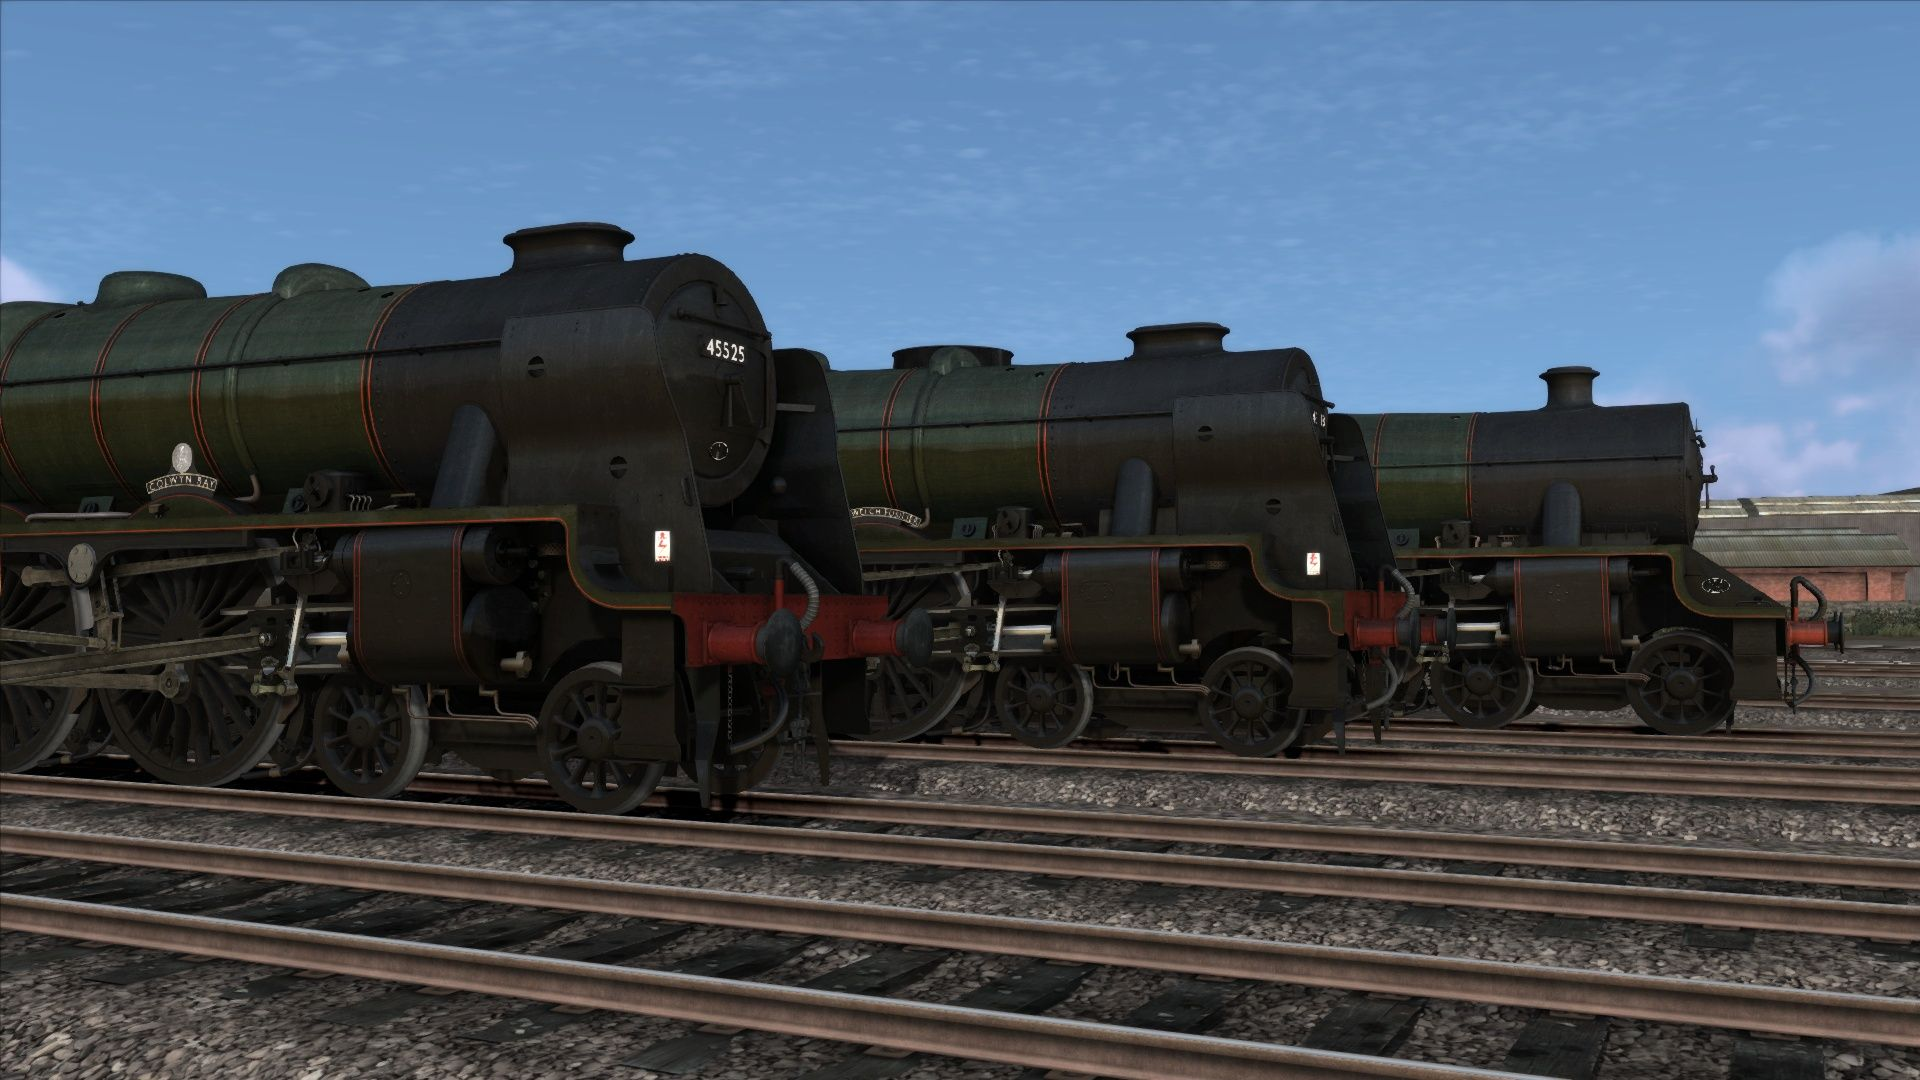 Screenshot_Weardale and Teesdale Rail Network_54.52524--1.54457_19-30-33